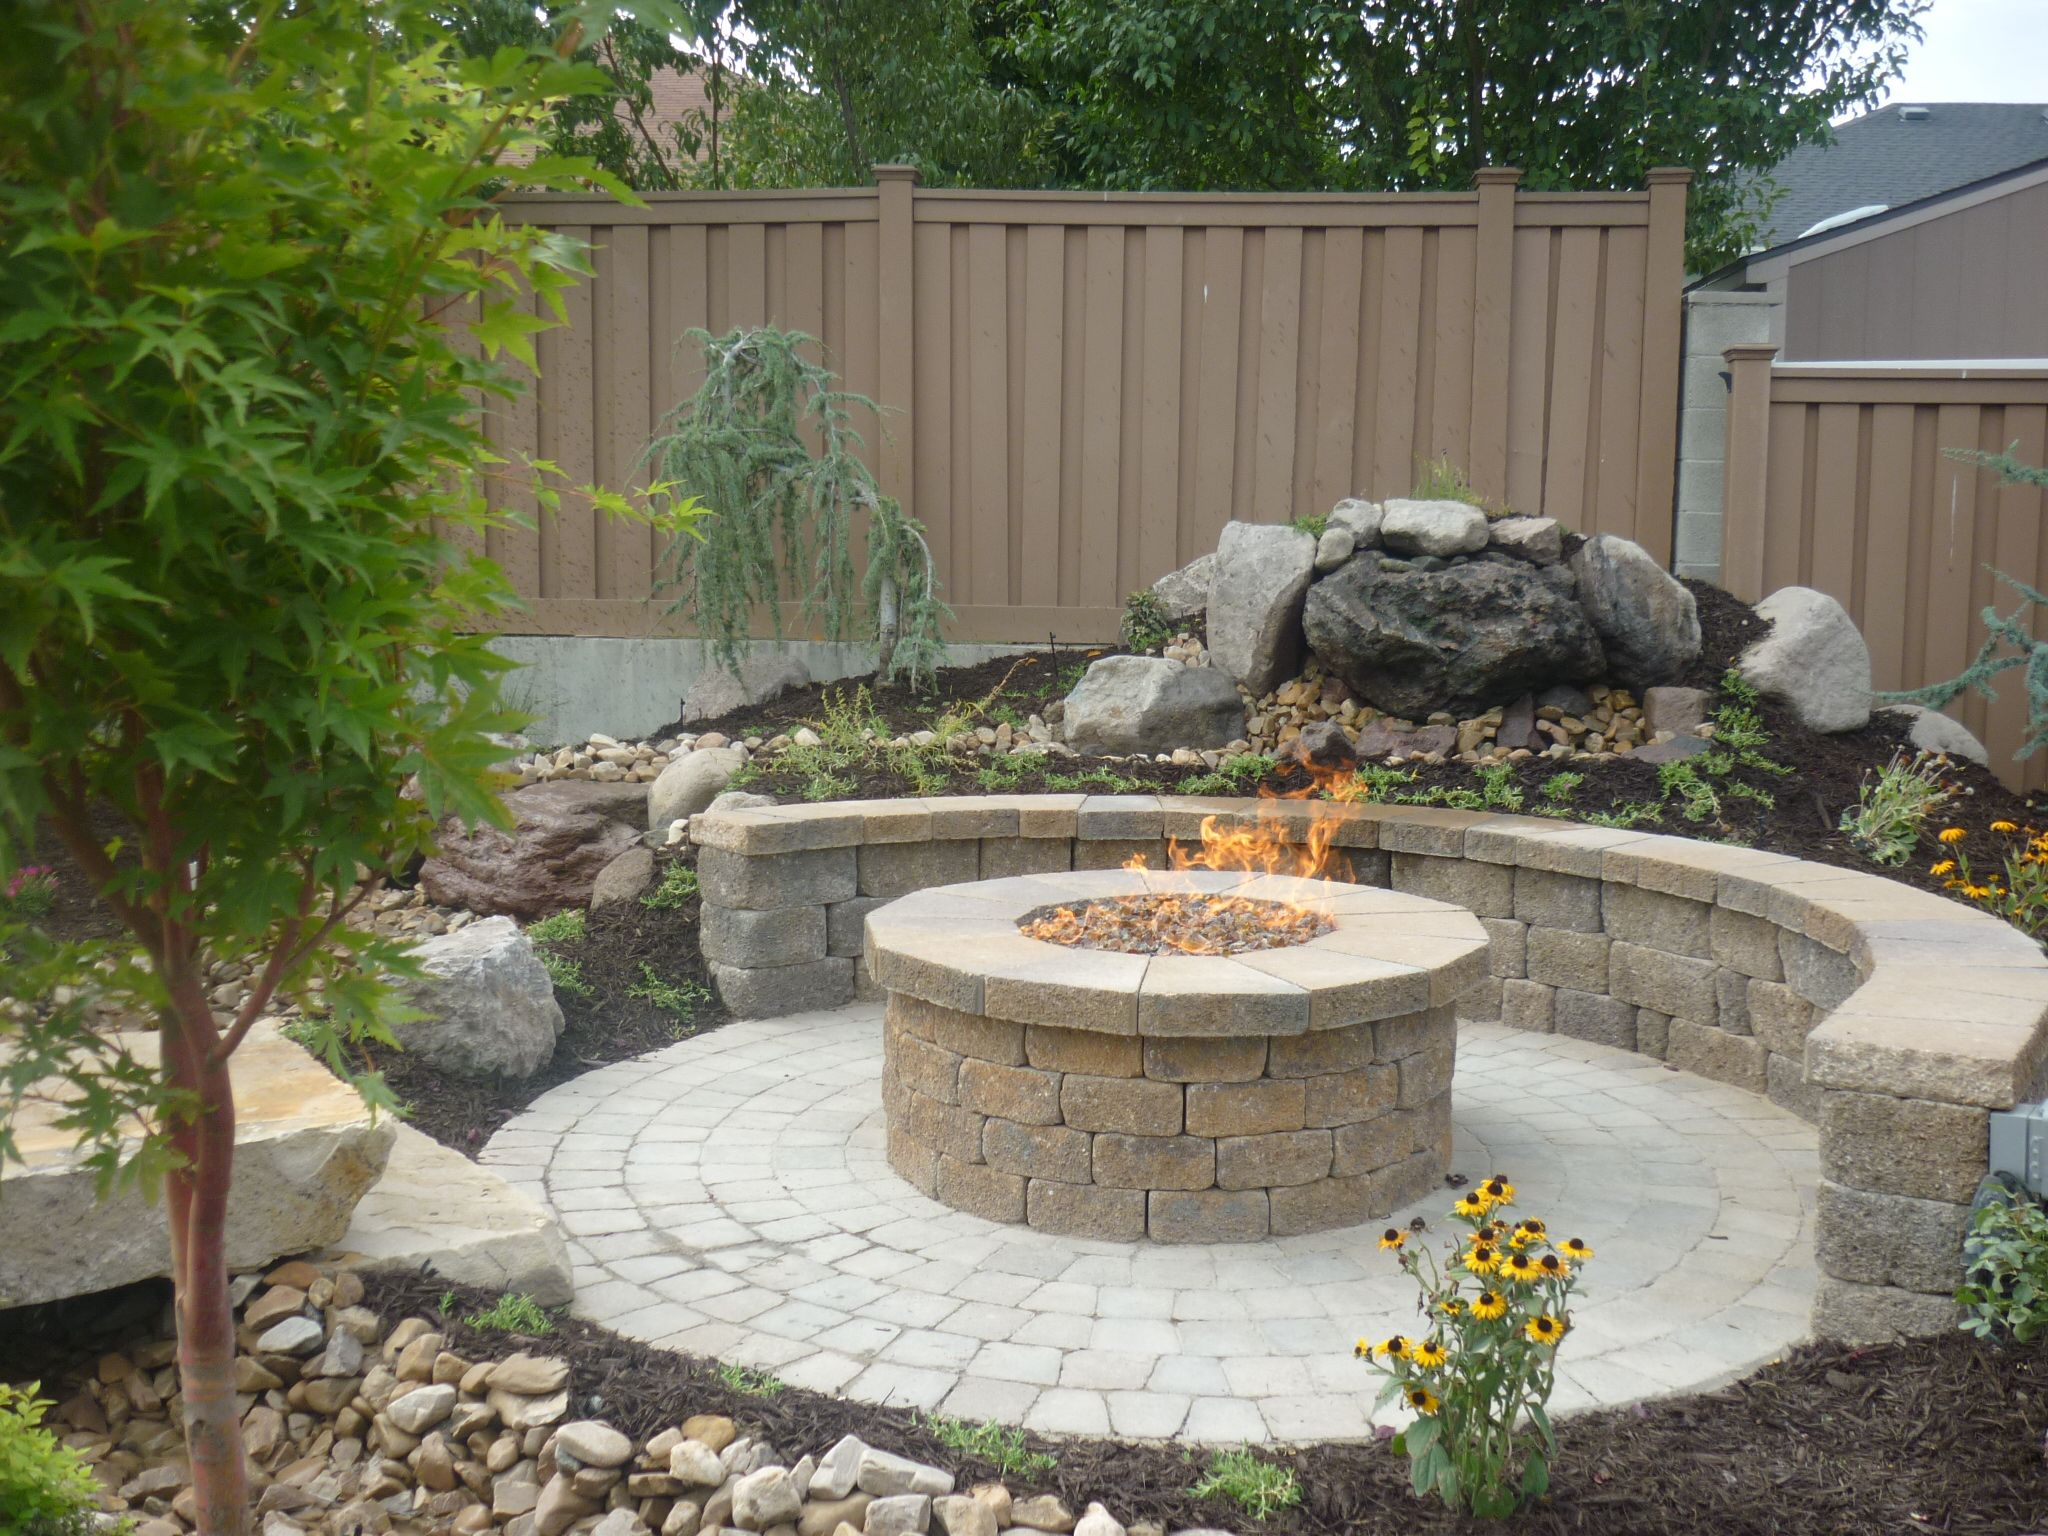 Concrete Grill Pad Area Circular Paver Patio With Fire